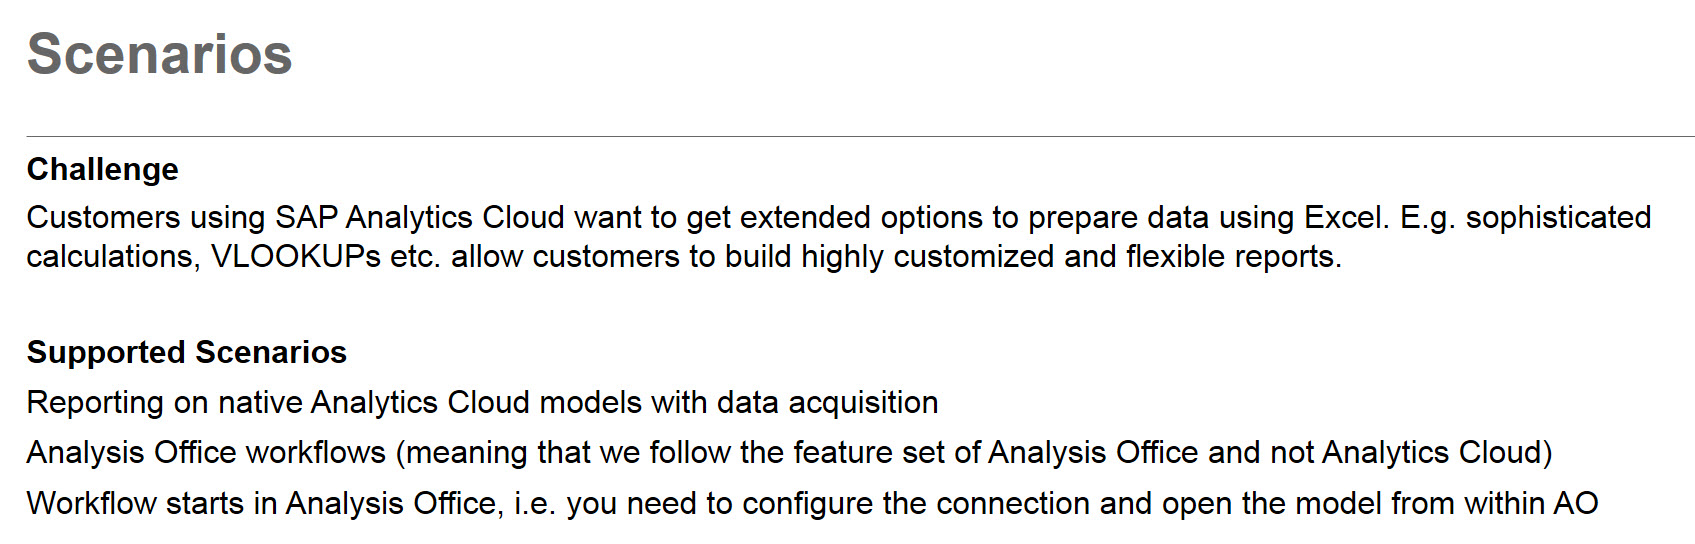 ASUG Webcast: What's New in Analysis Office 2 6 Recap | SAP Blogs